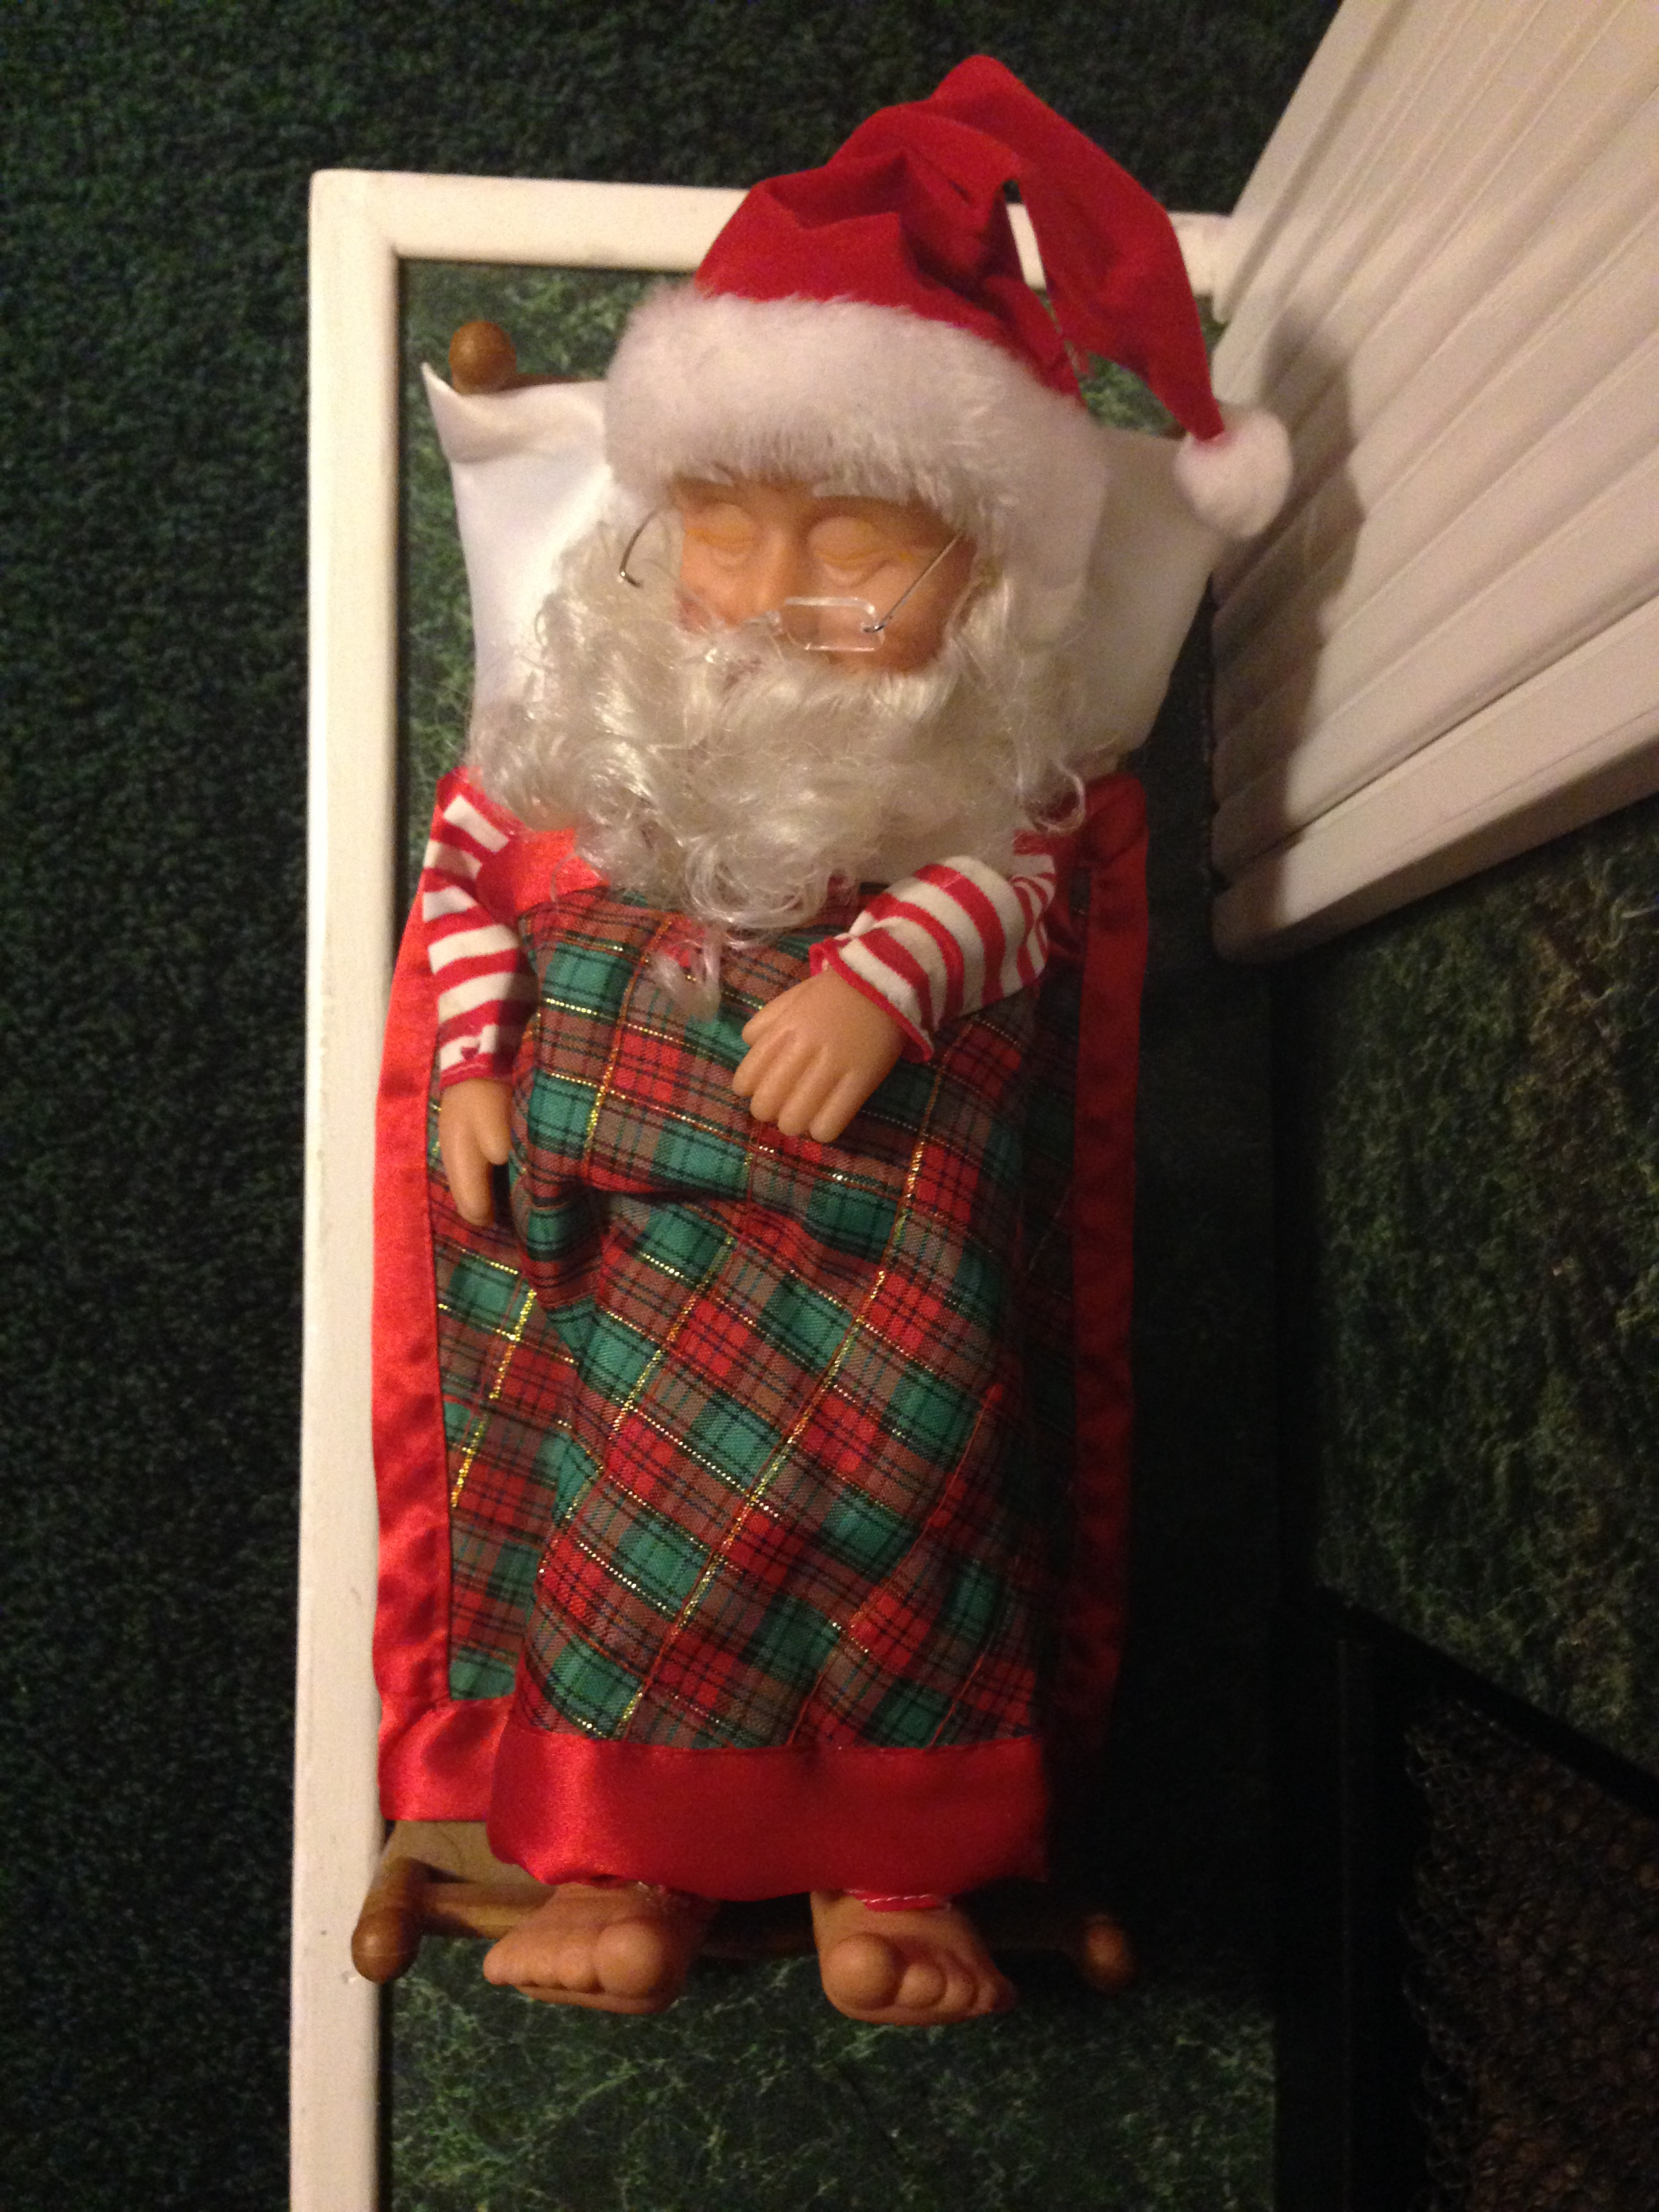 sshhh Santa, go to sleep. It's been a long day.